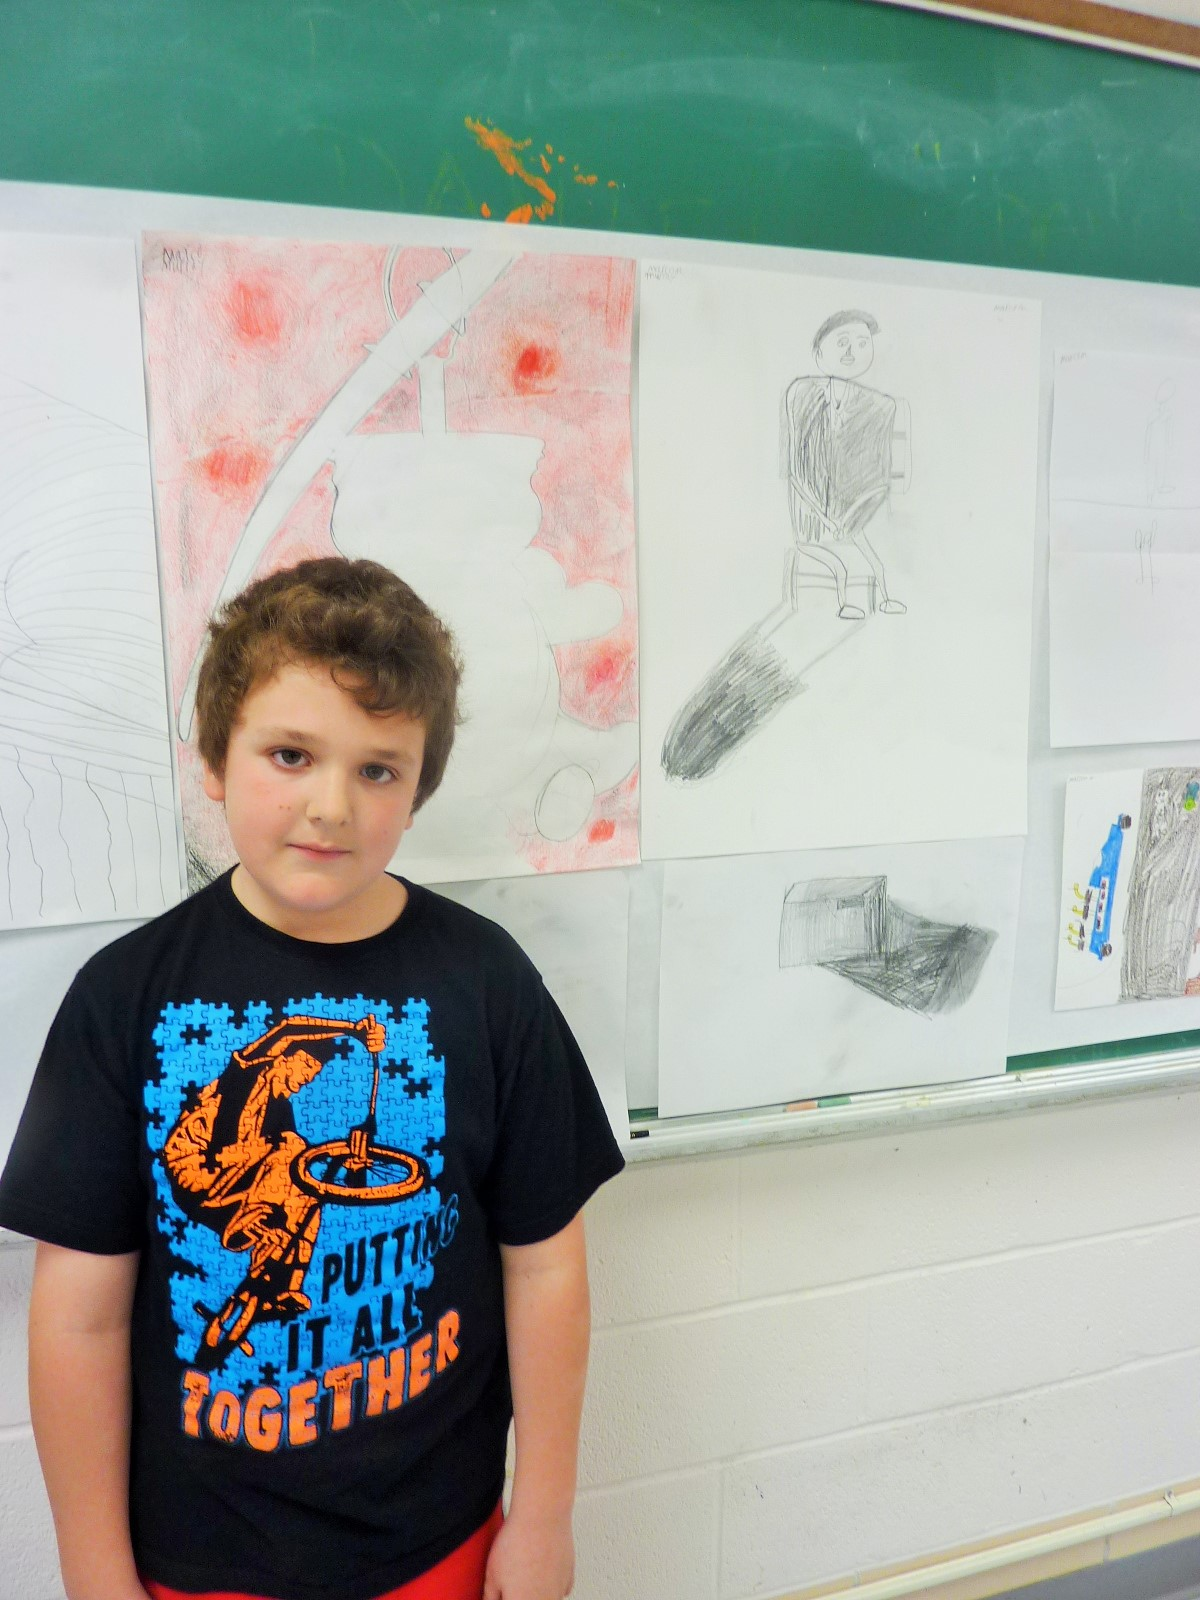 Marco was his best critic in the drawing class, his facial expression says it all!